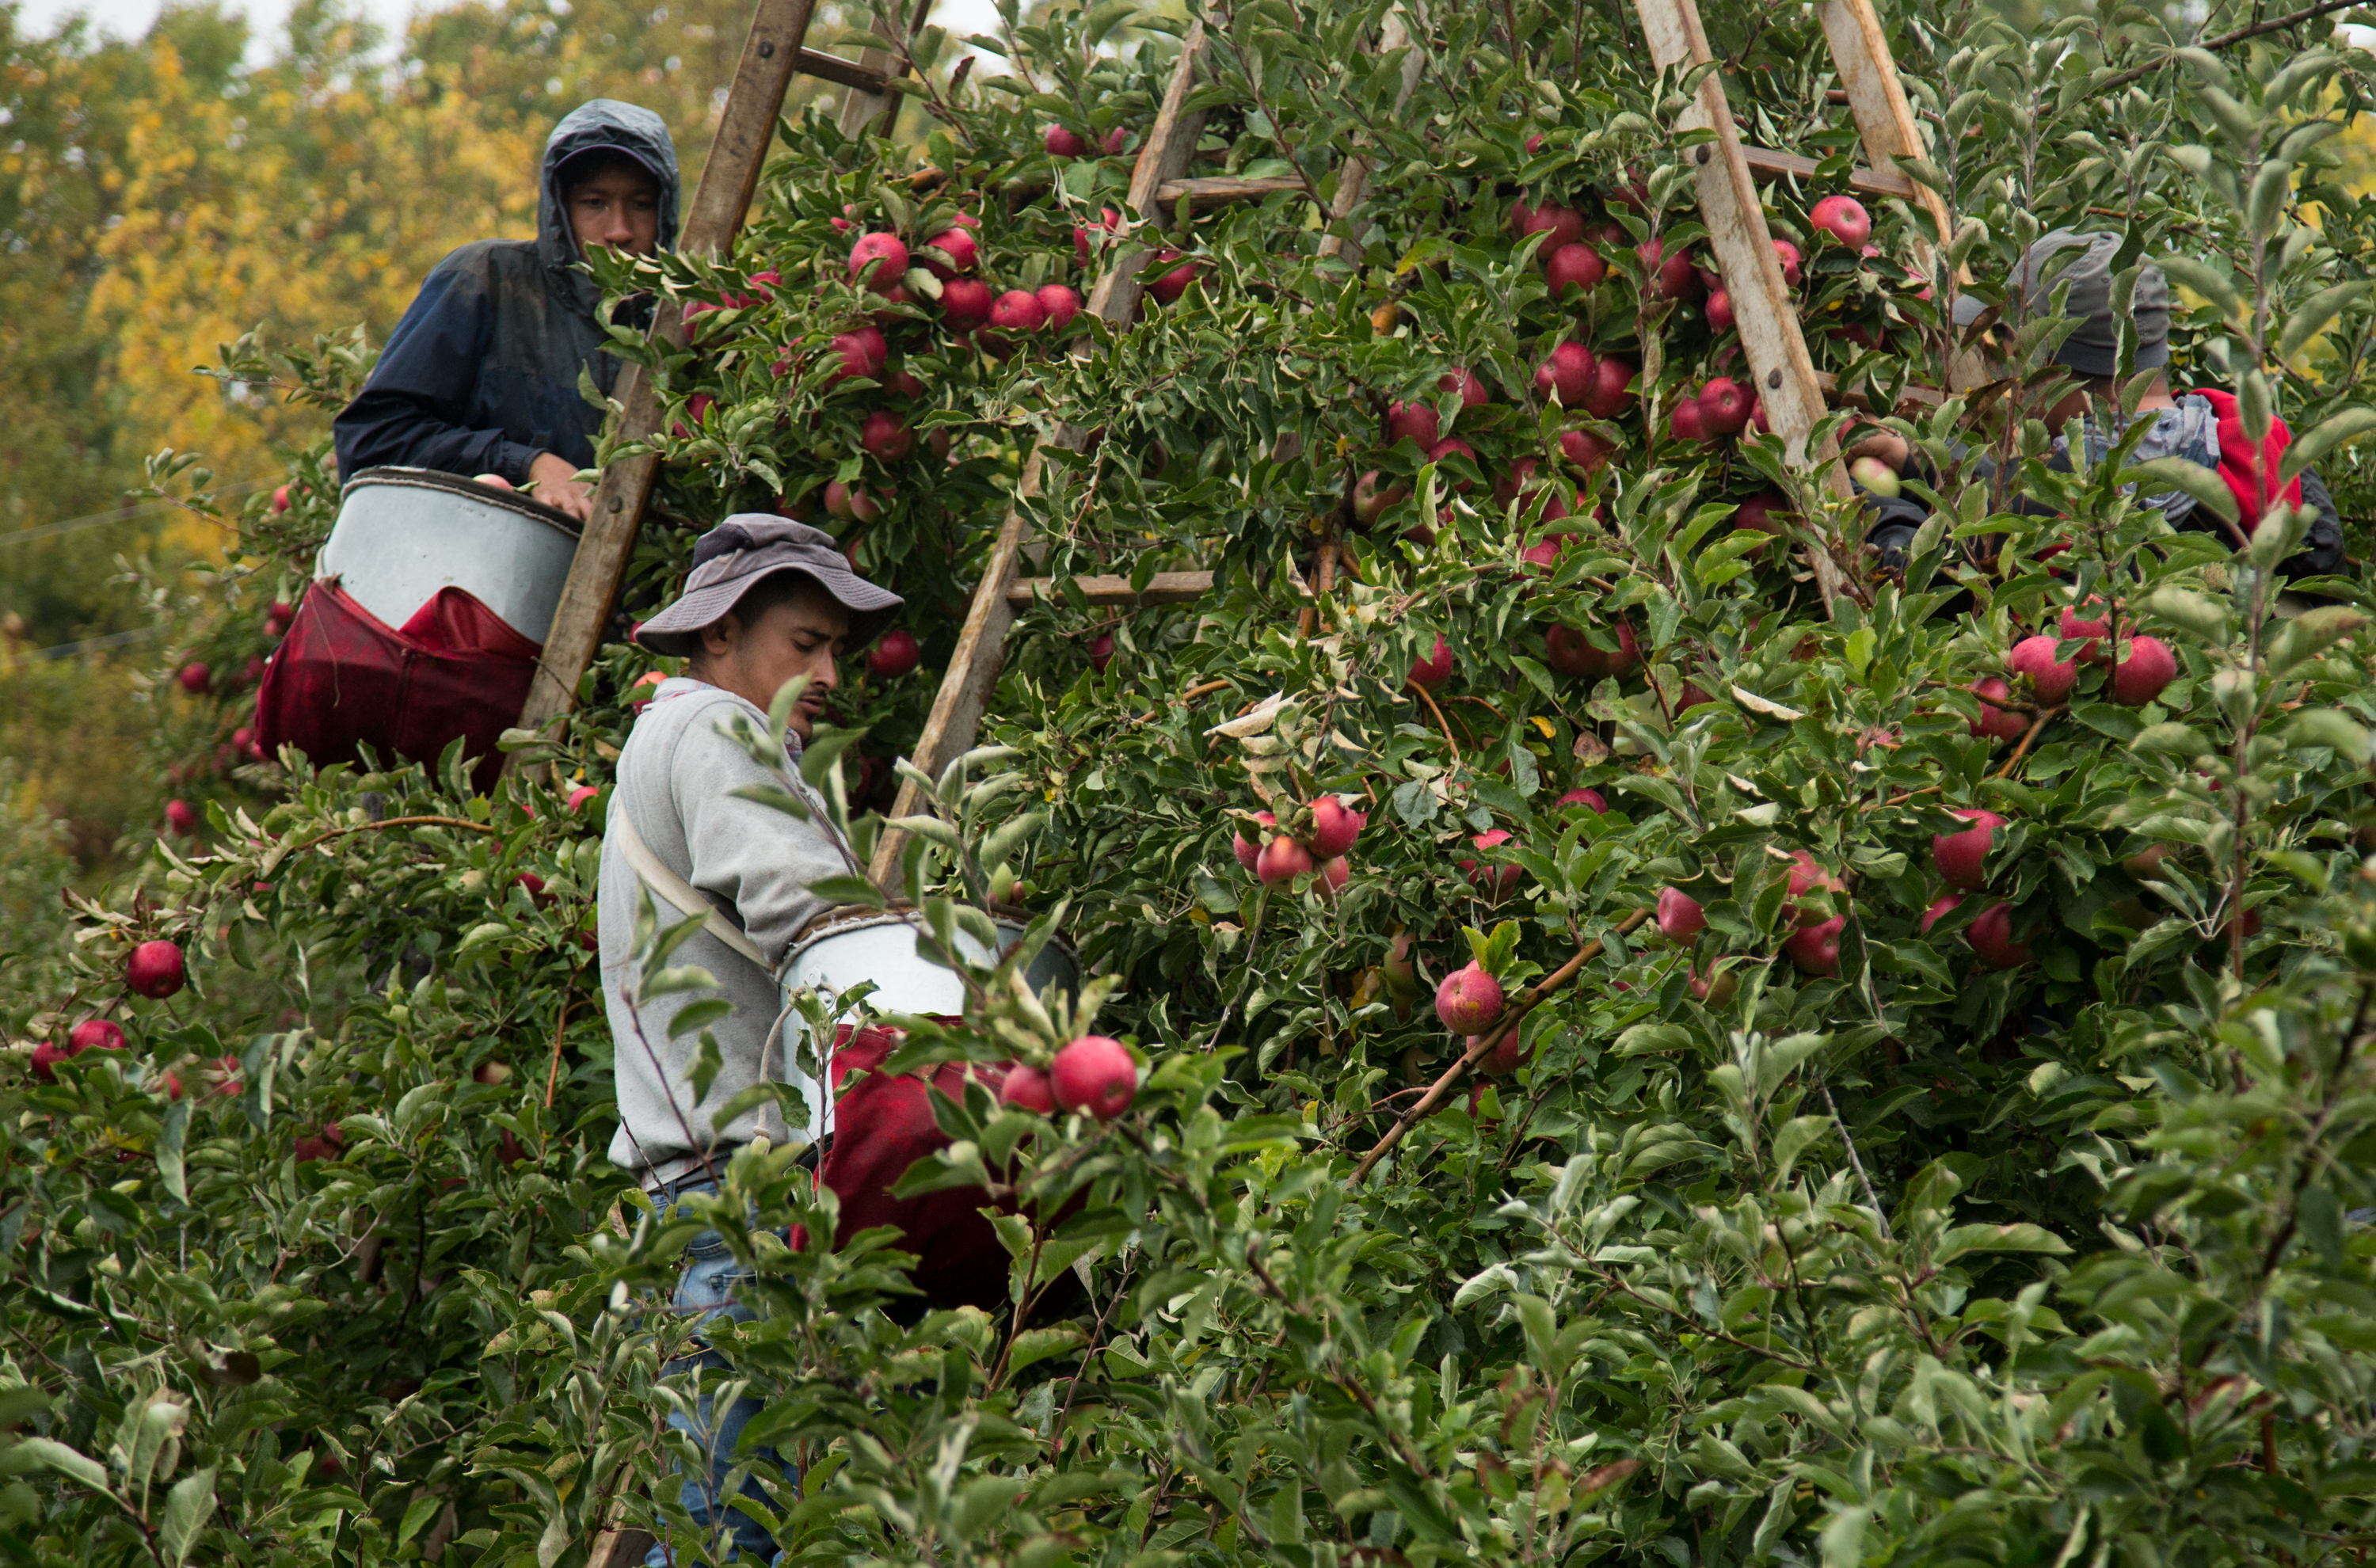 Marco Antonio Hernandez L˜pez (lower left) picks apples with fellow workers at Brown's Farm in Waterport, N.Y. on Oct. 17, 2016. The farm finds workers through a Florida east coast agency, which has a rigorous interview process and requires a clean history as well as a respectful and responsible charisma.